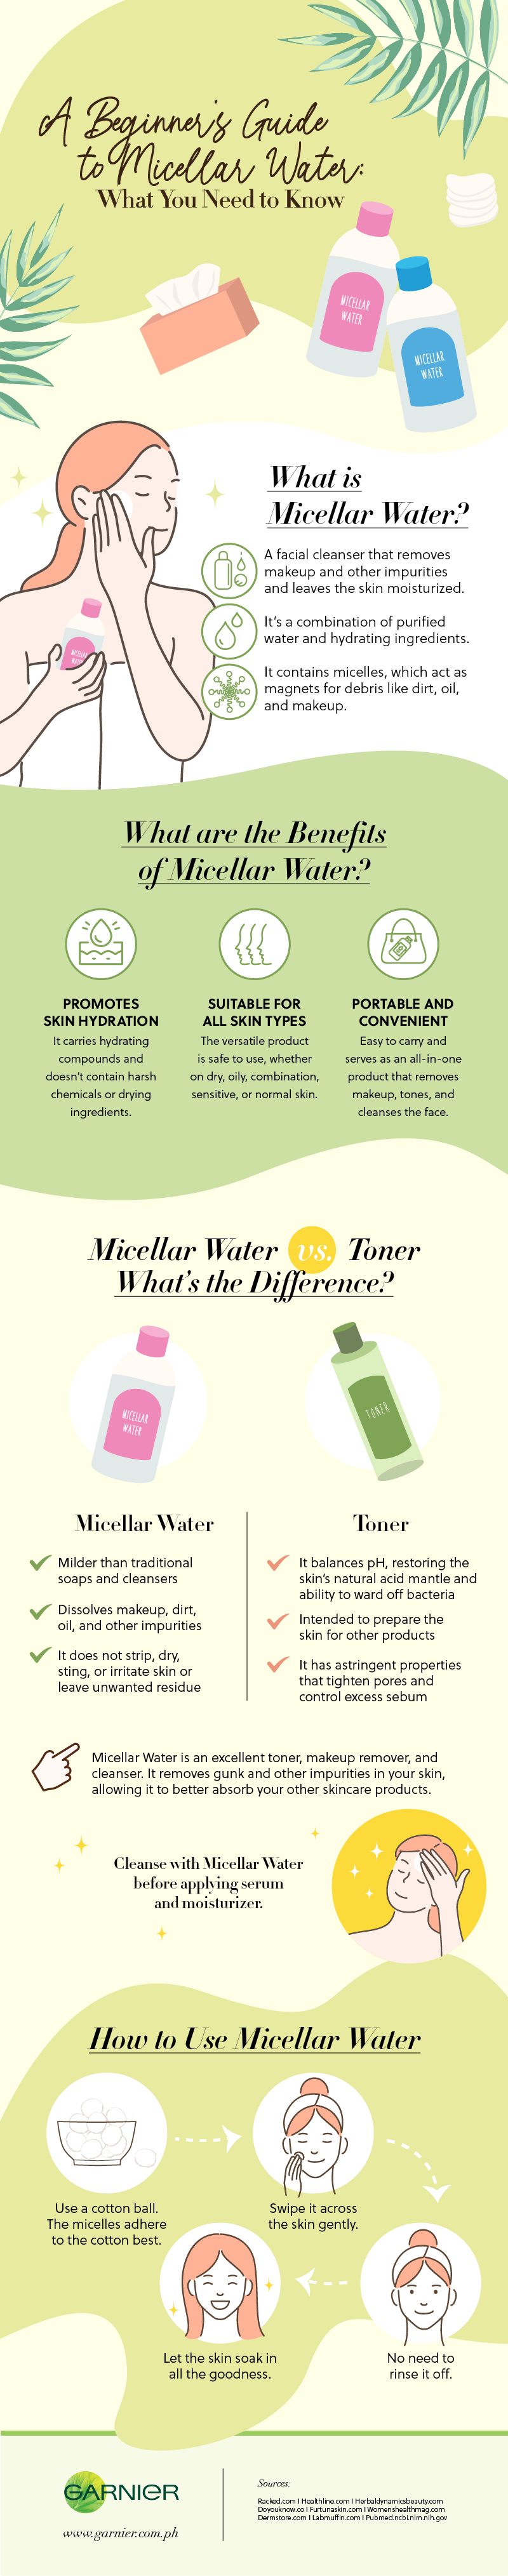 A Beginner's Guide to Micellar Water: What You Need to Know